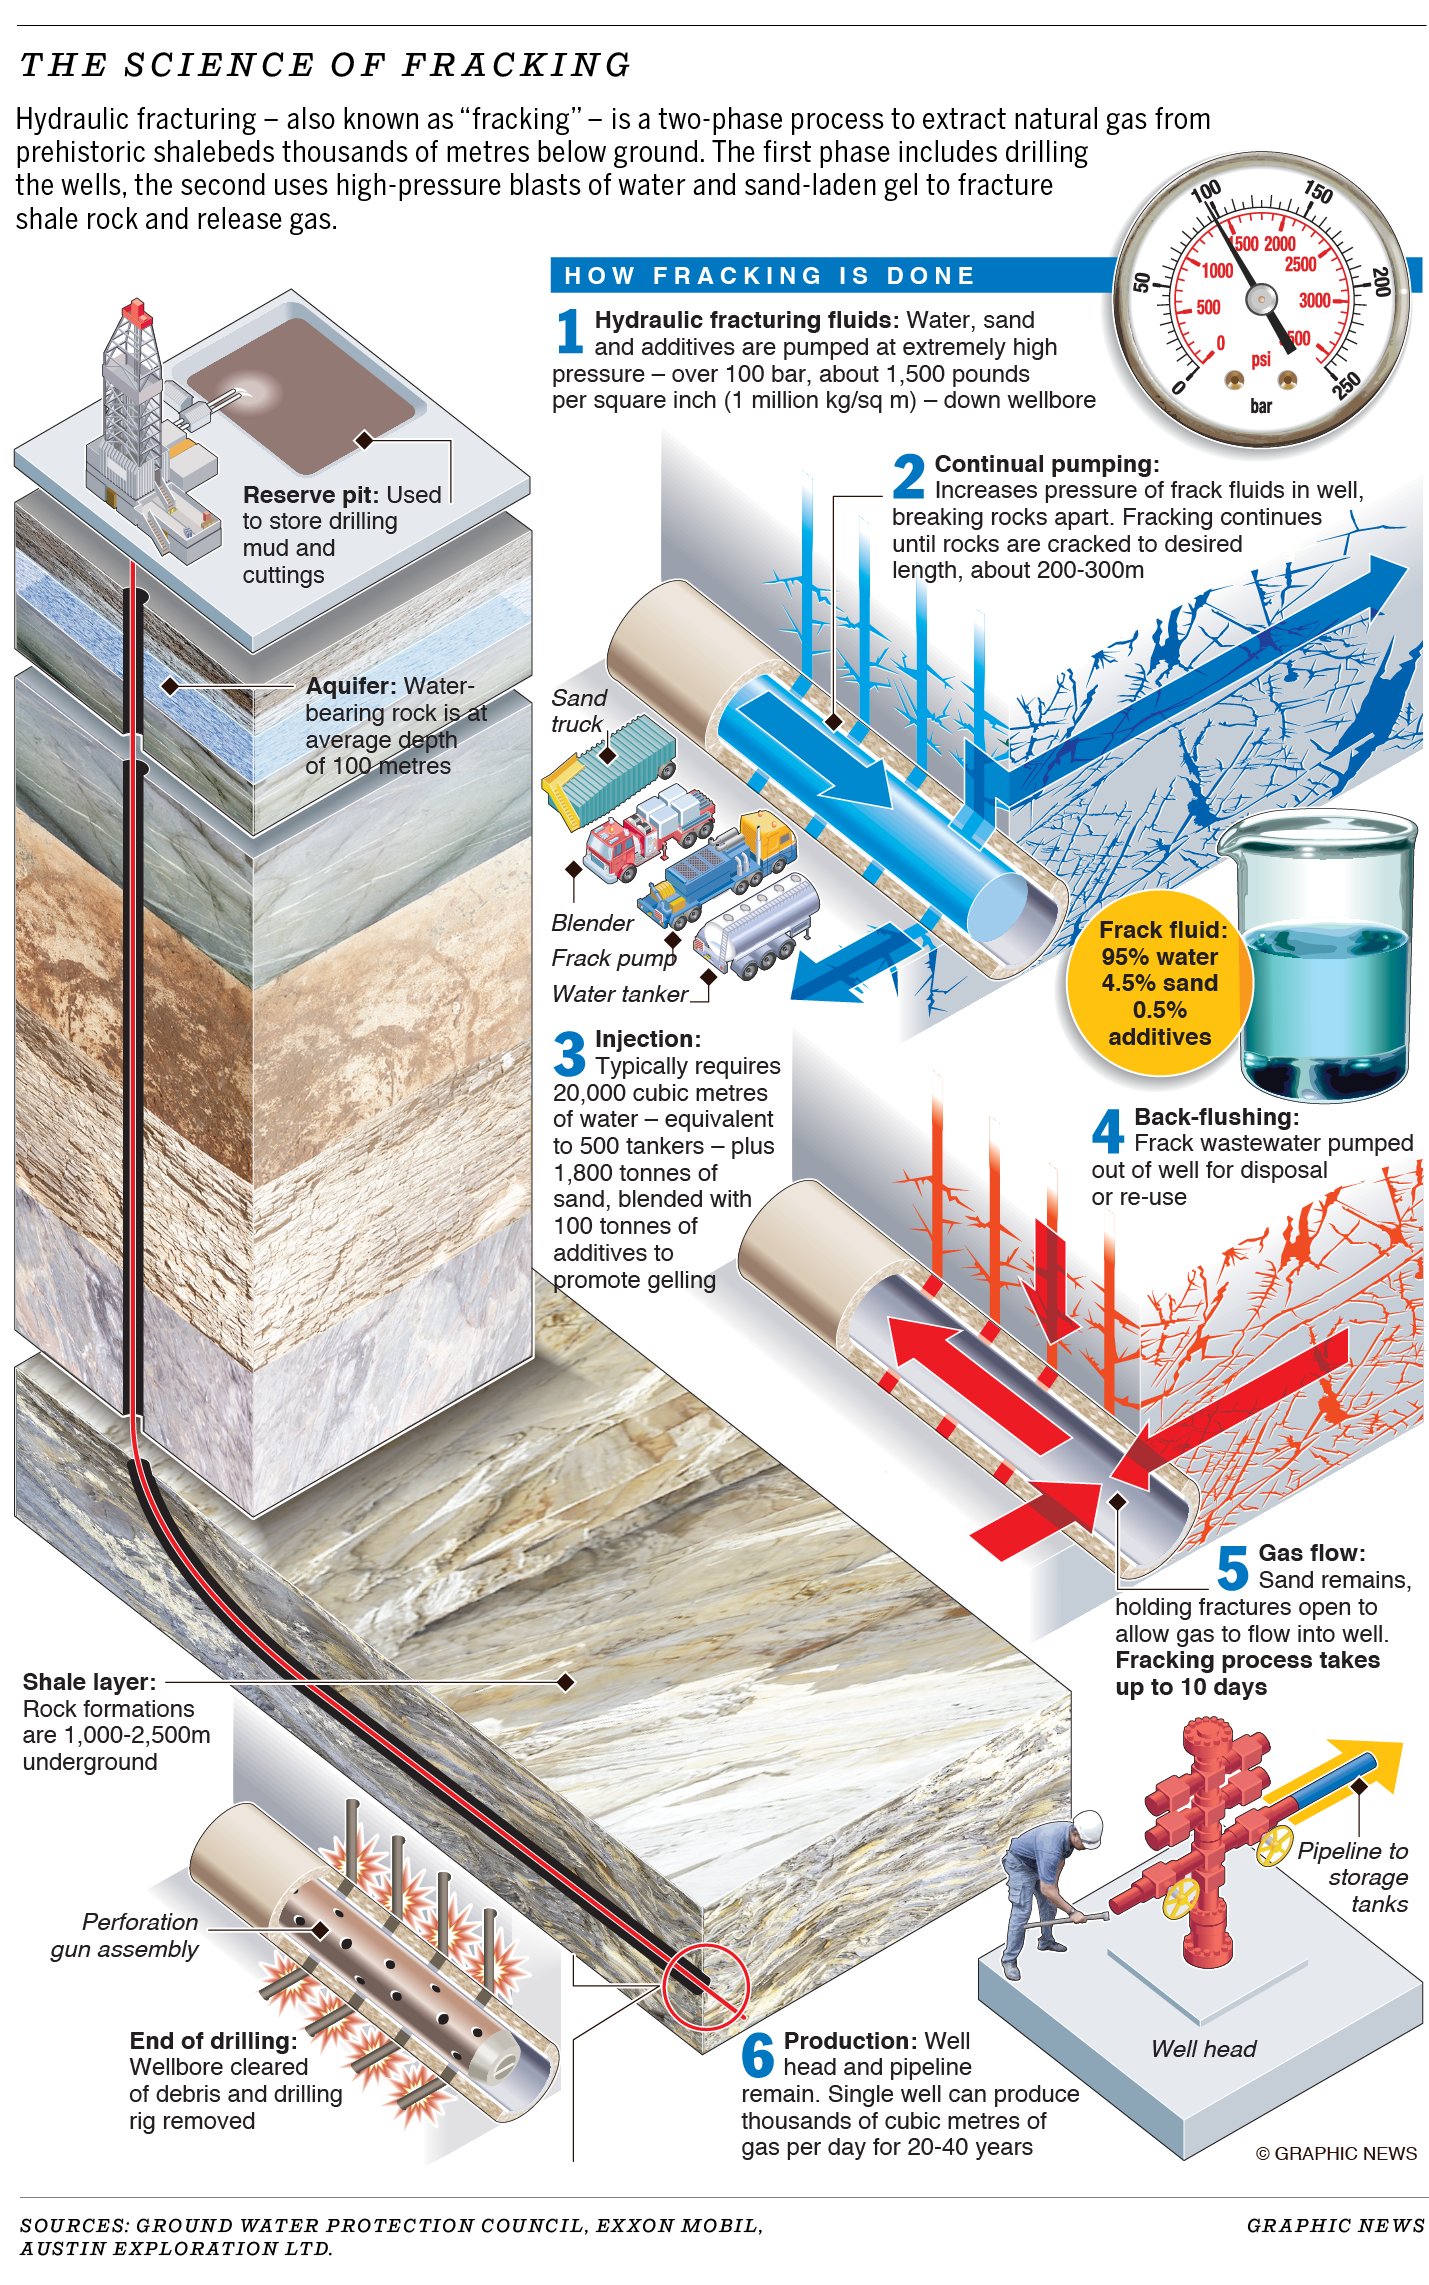 Science of fracking graphic